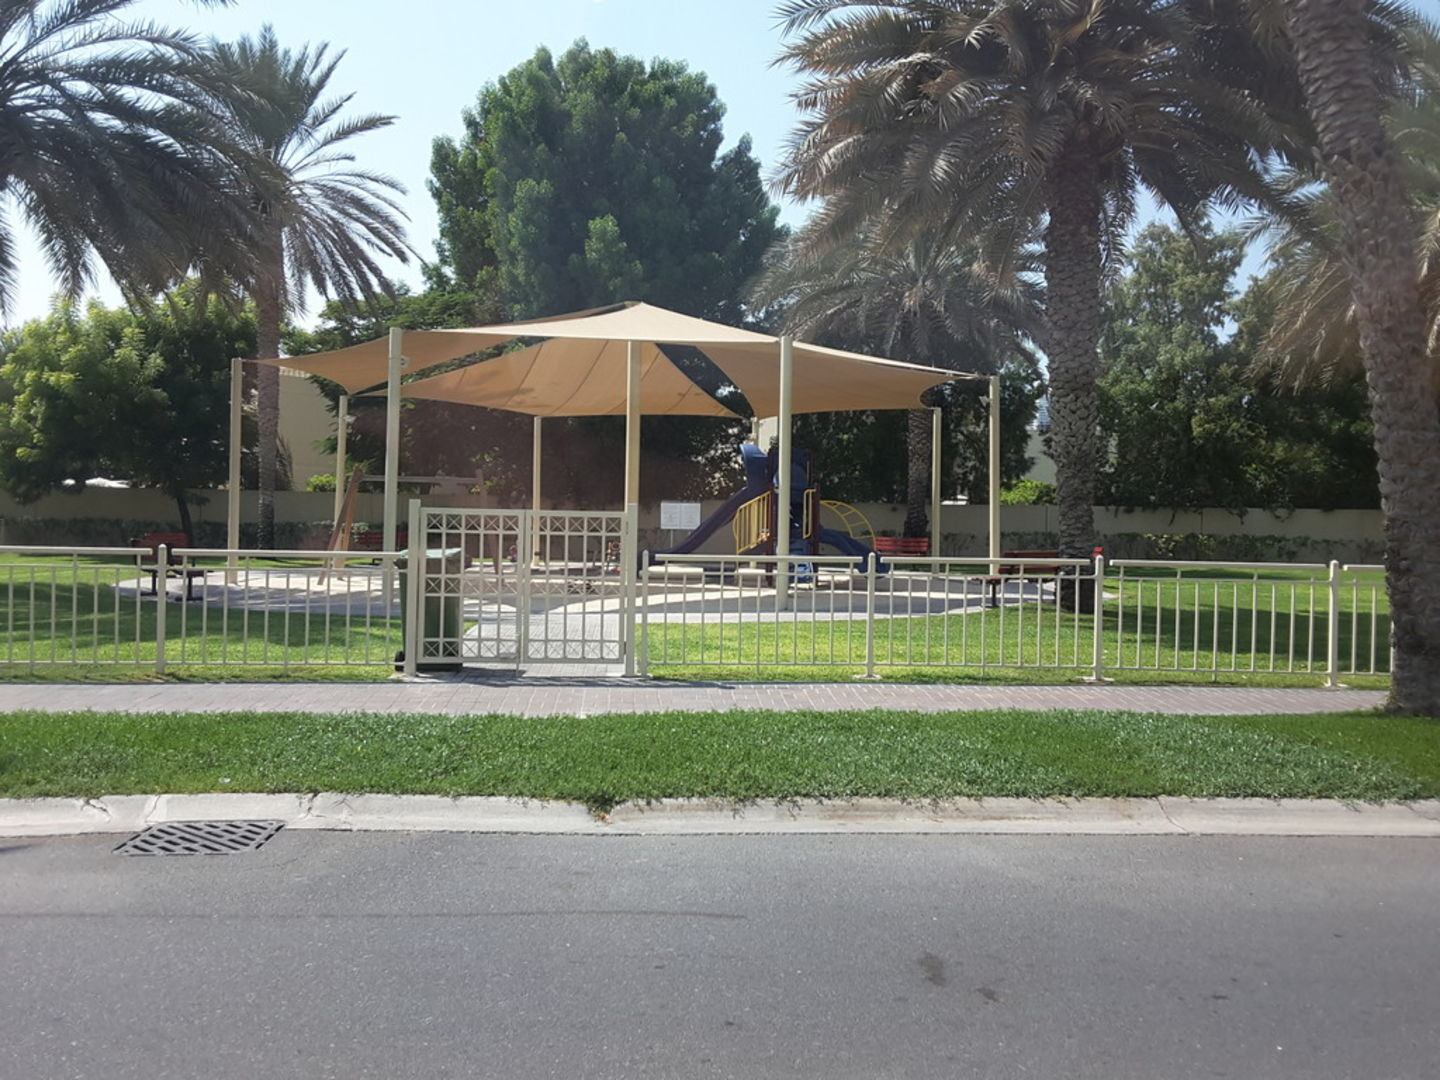 HiDubai-business-ecm-playground-leisure-culture-parks-beaches-meadows-al-thanyah-4-dubai-4